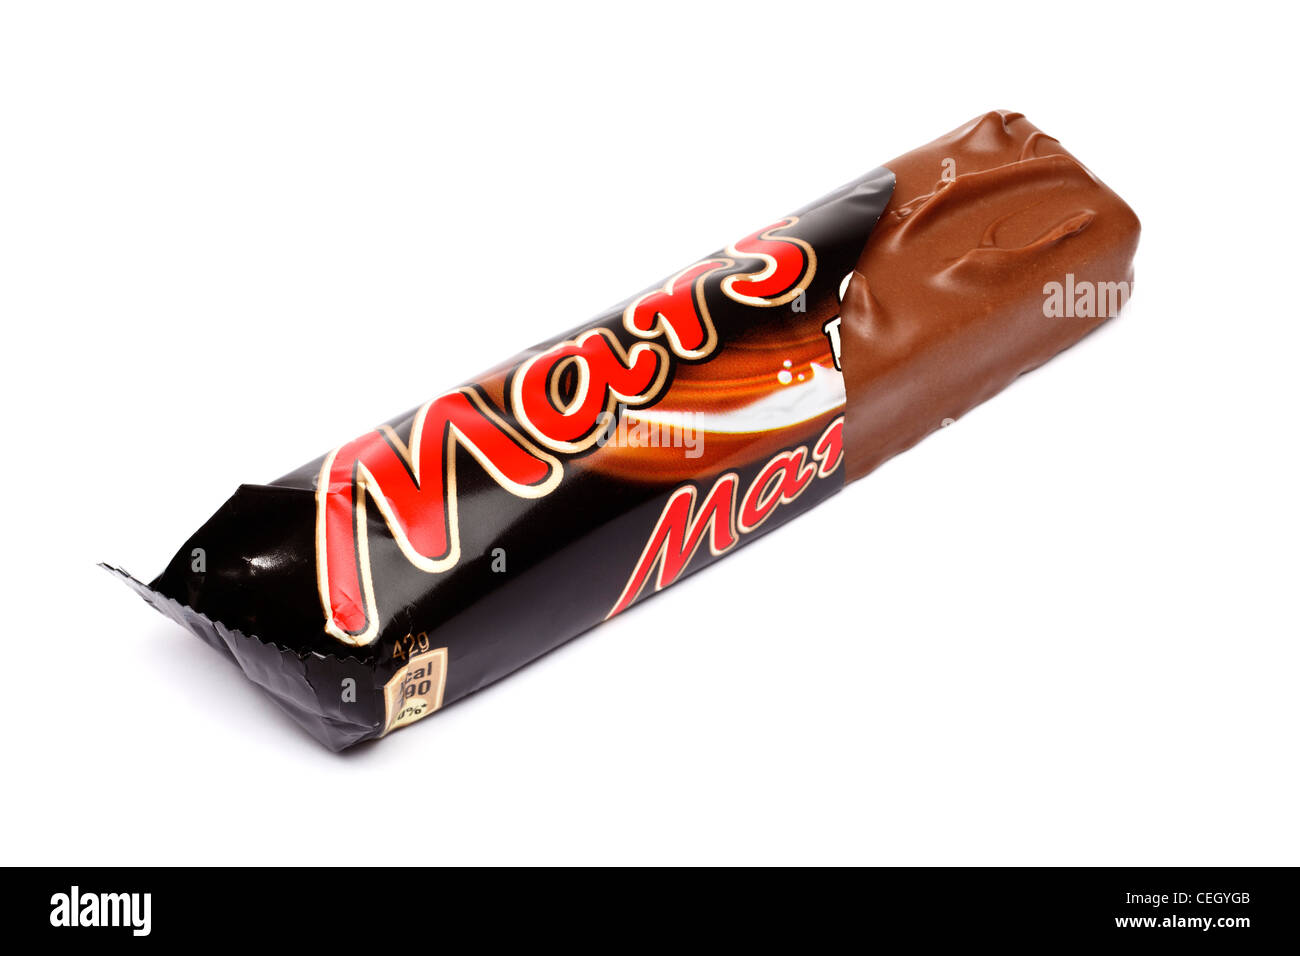 Mars bar in a torn foil wrapper on white background - Stock Image